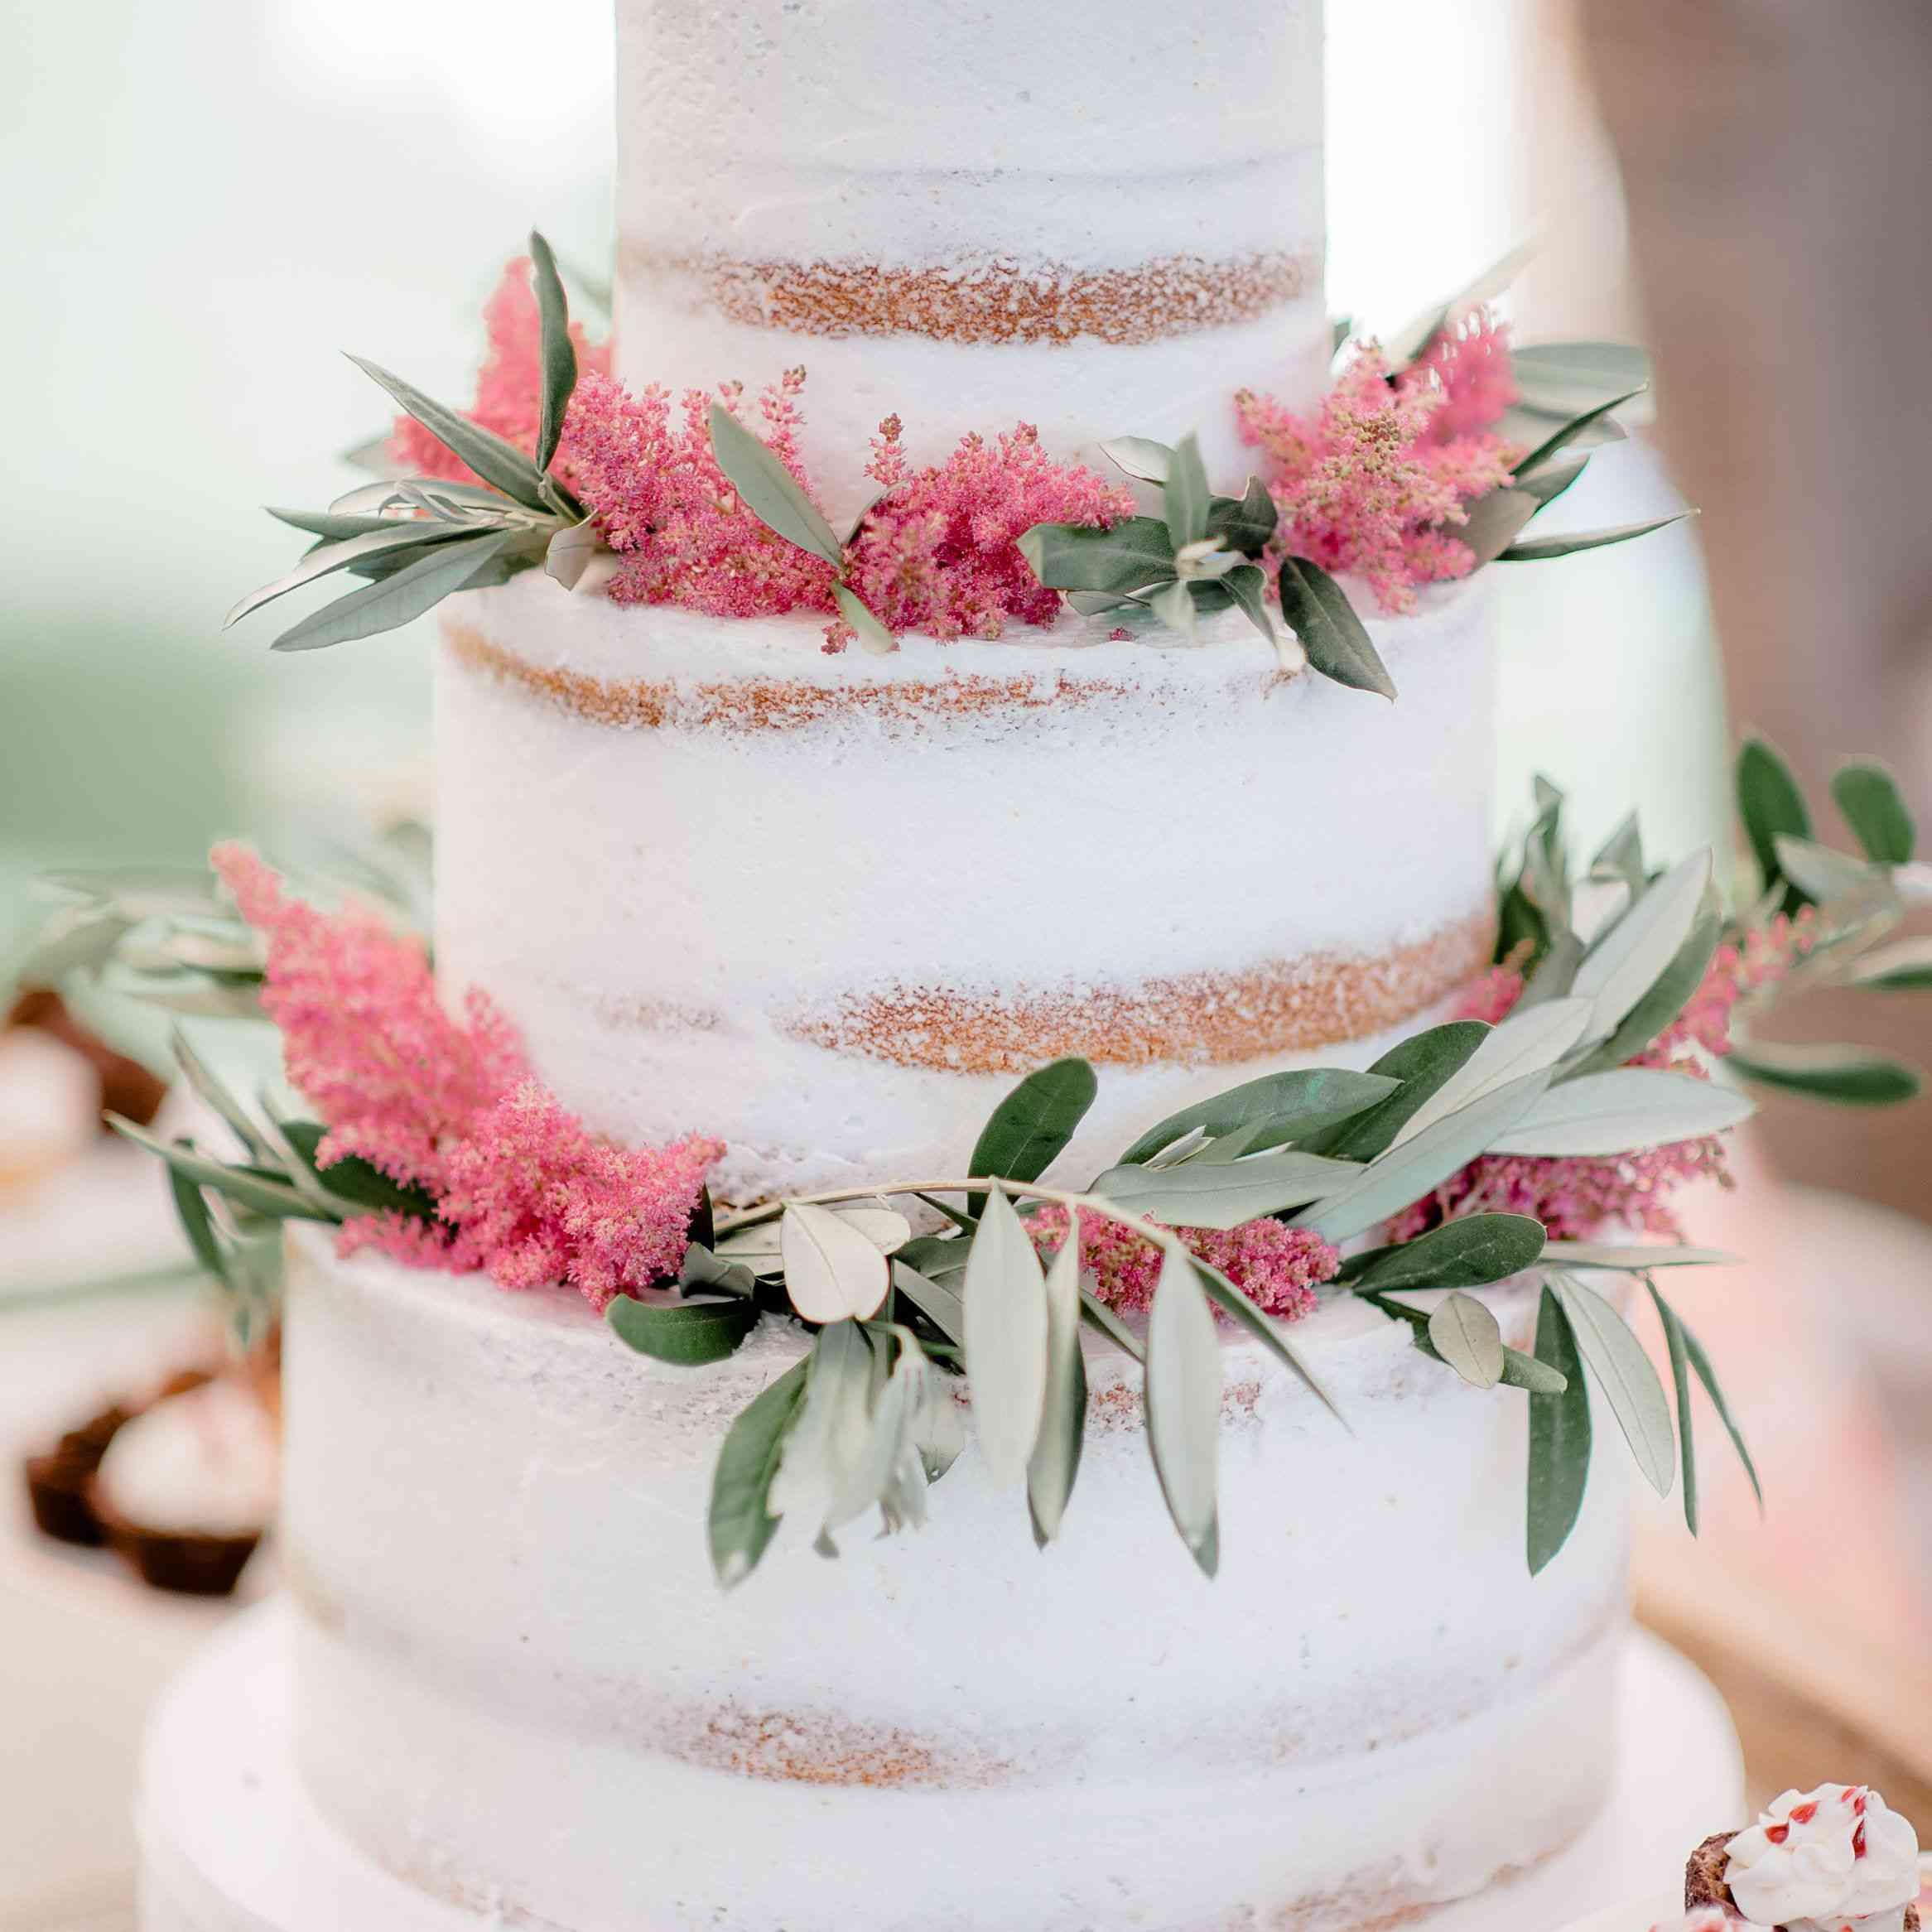 Naked wedding cake with pink flowers and greenery